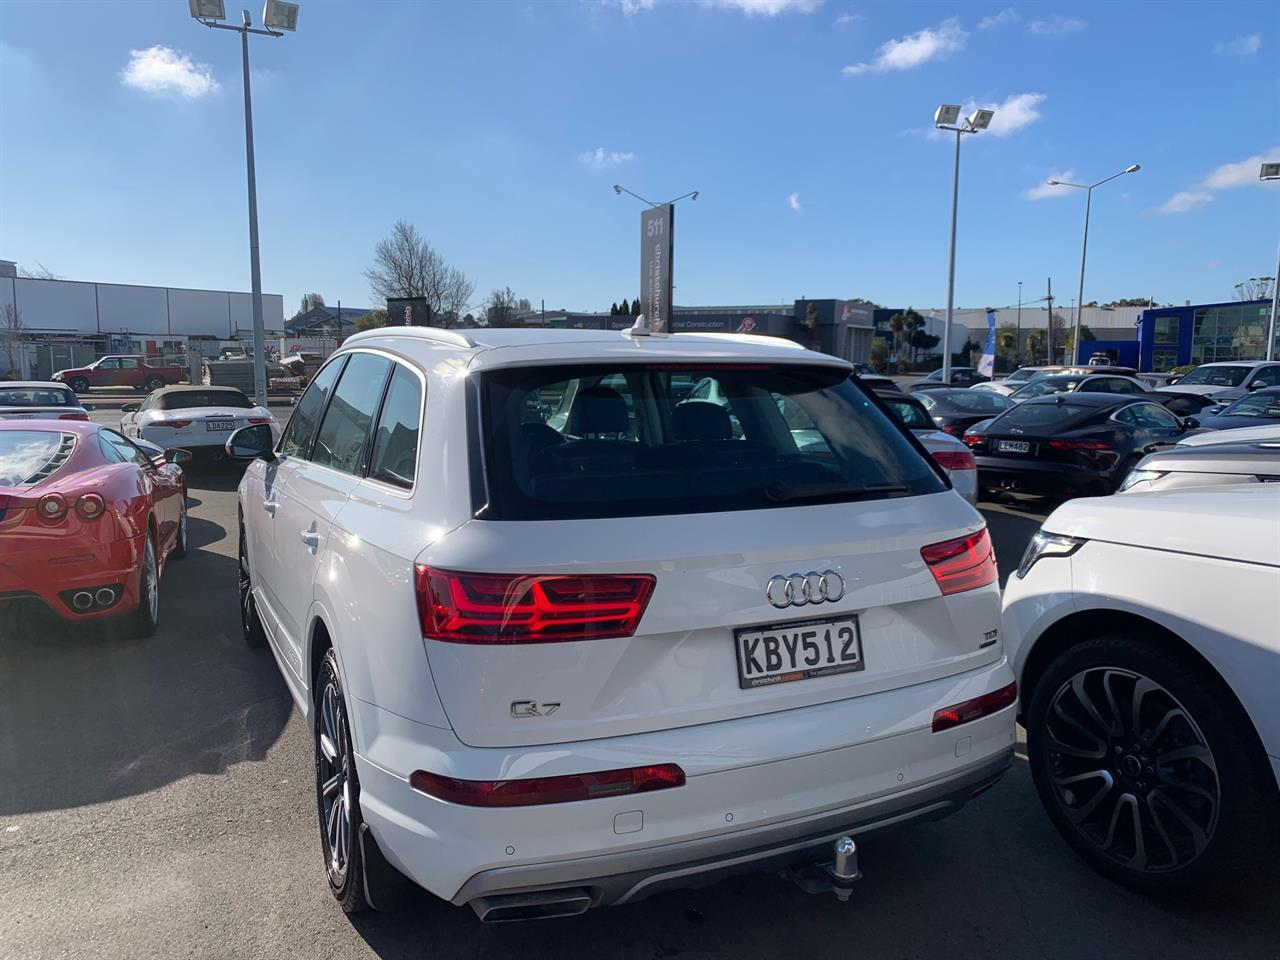 image-3, 2016 Audi Q7 3.0 TDI 200KW 8 Speed New Shape at Christchurch